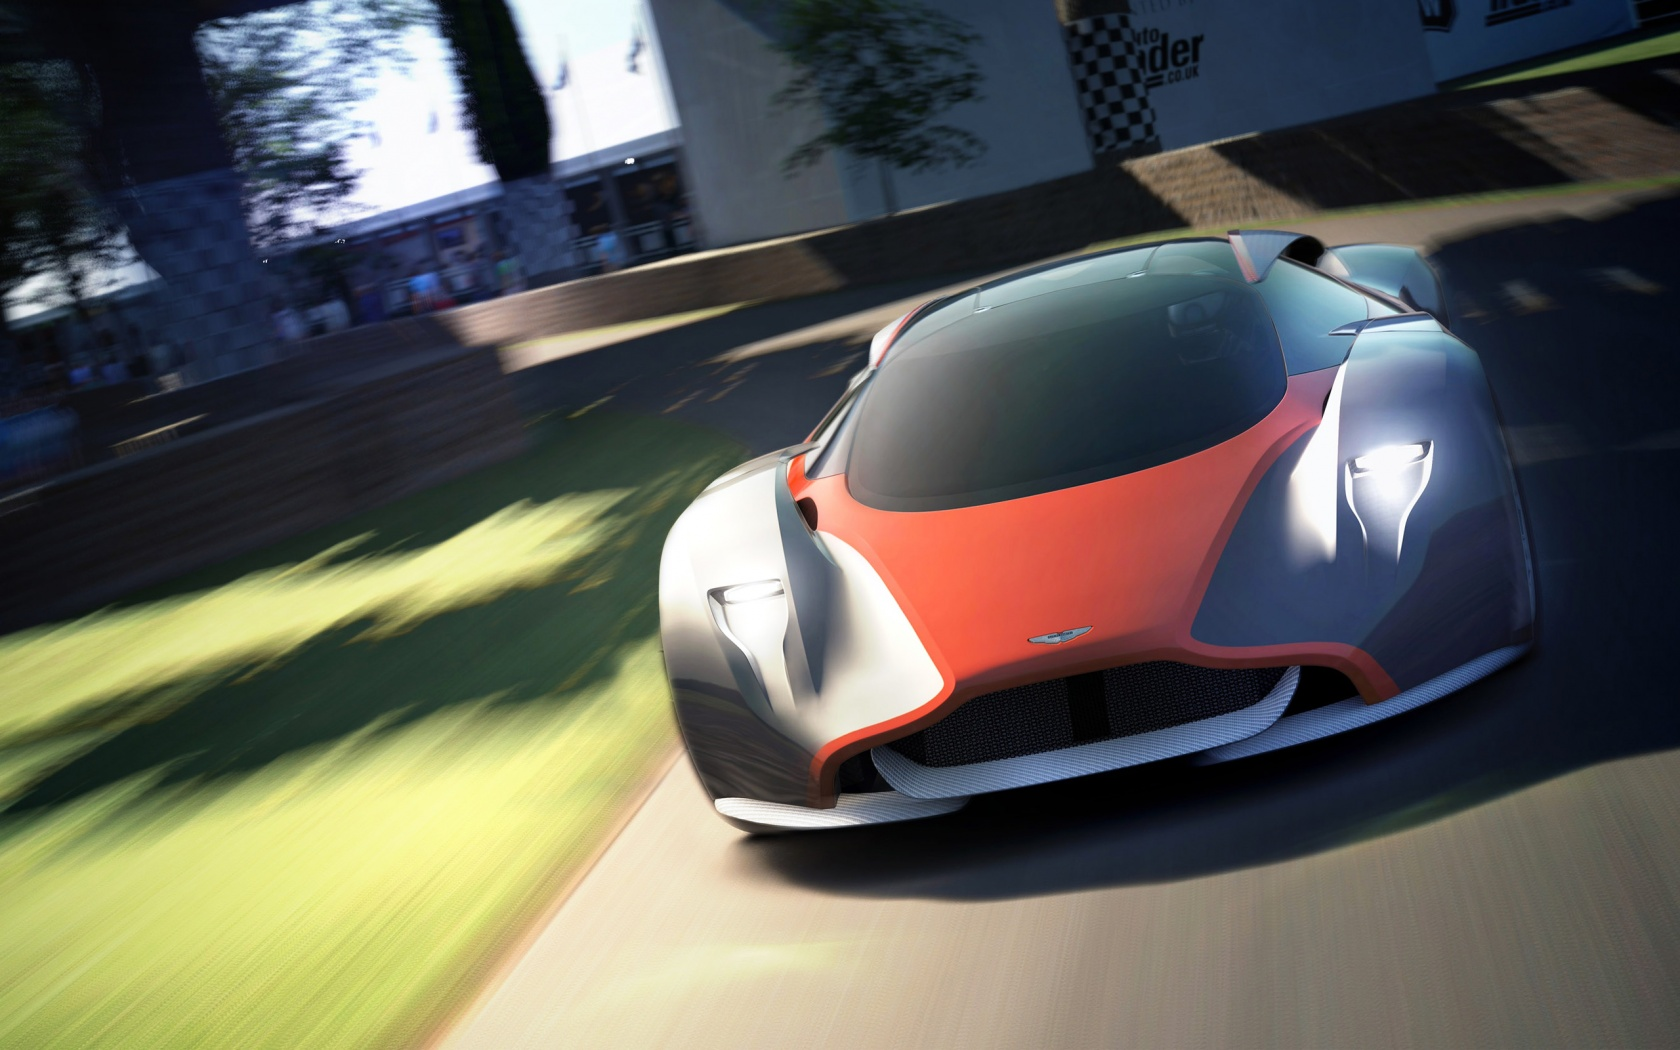 aston martin dp 100 vision gran turismo concept wallpapers in jpg. Cars Review. Best American Auto & Cars Review